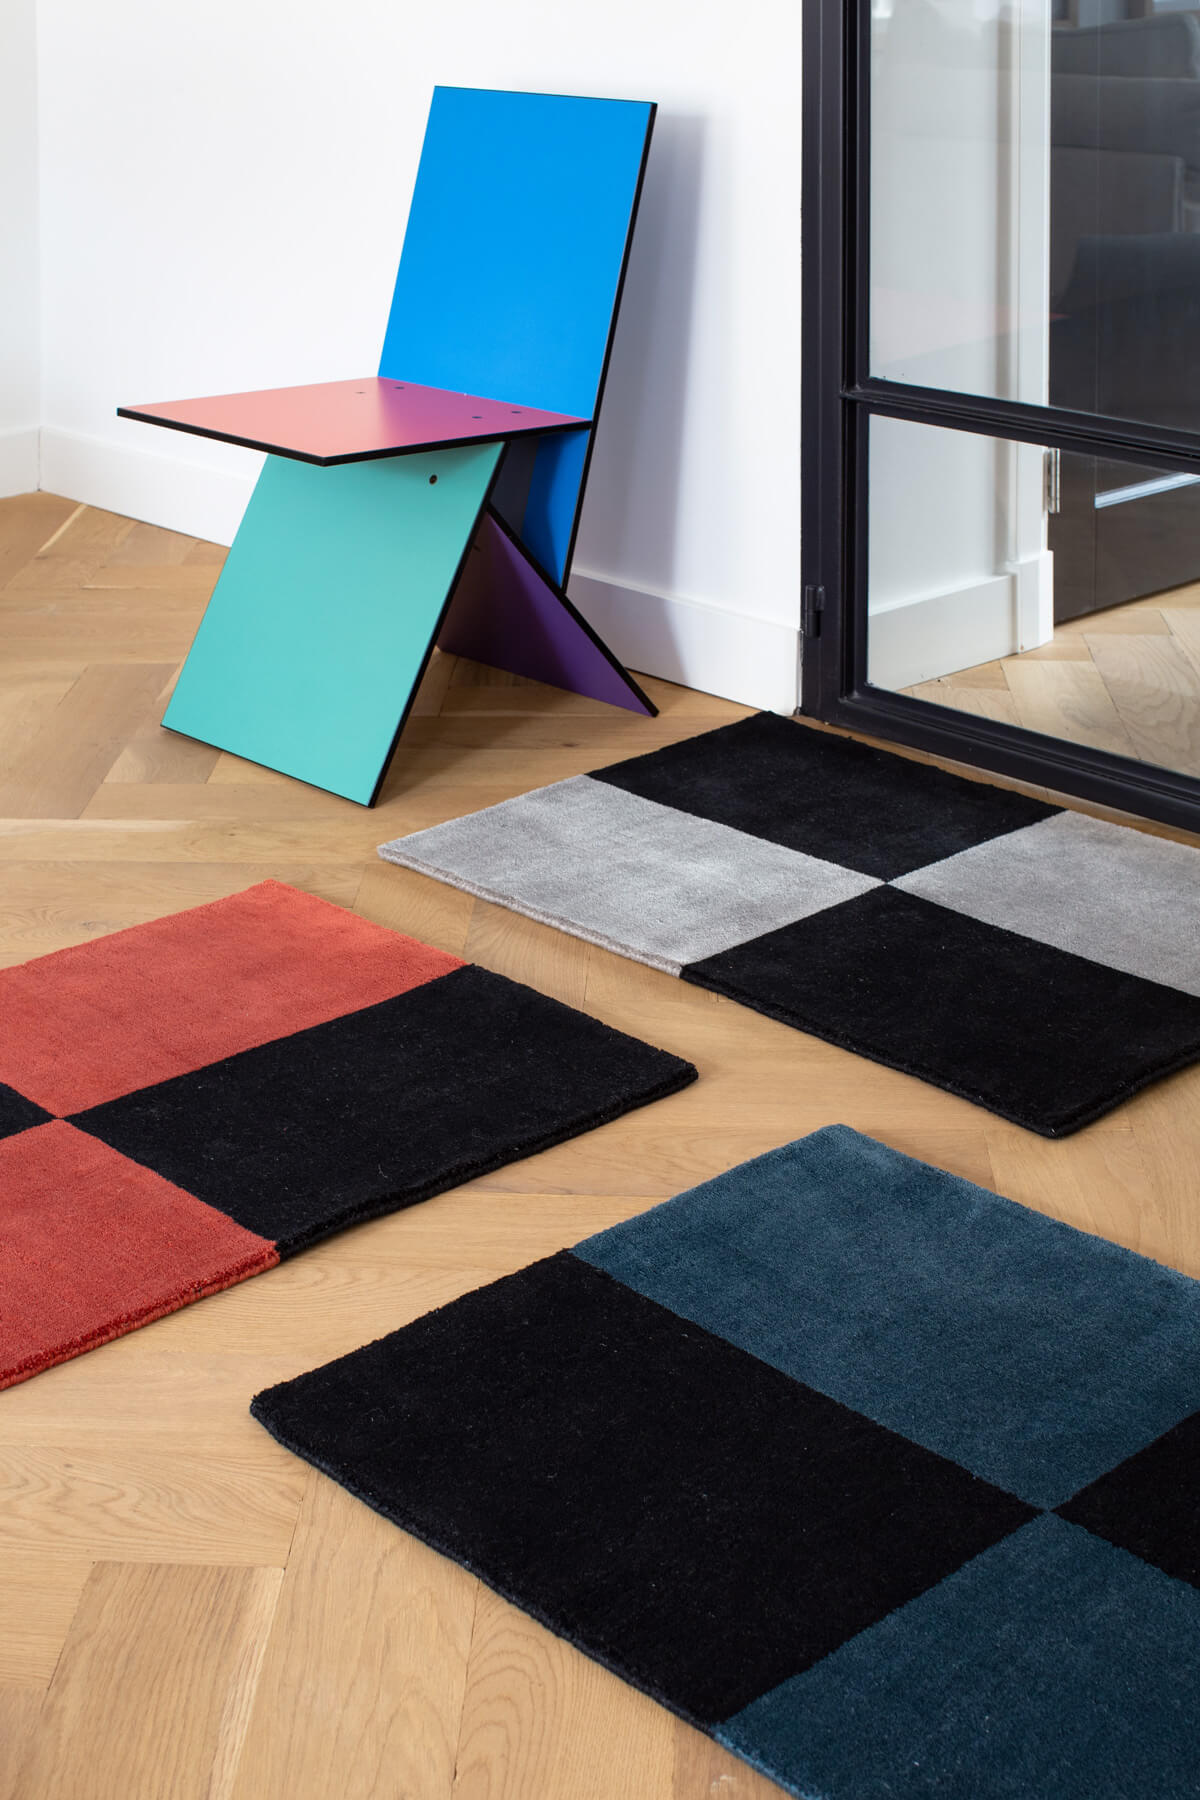 The door mat collection, displayed together with a colorful chair.